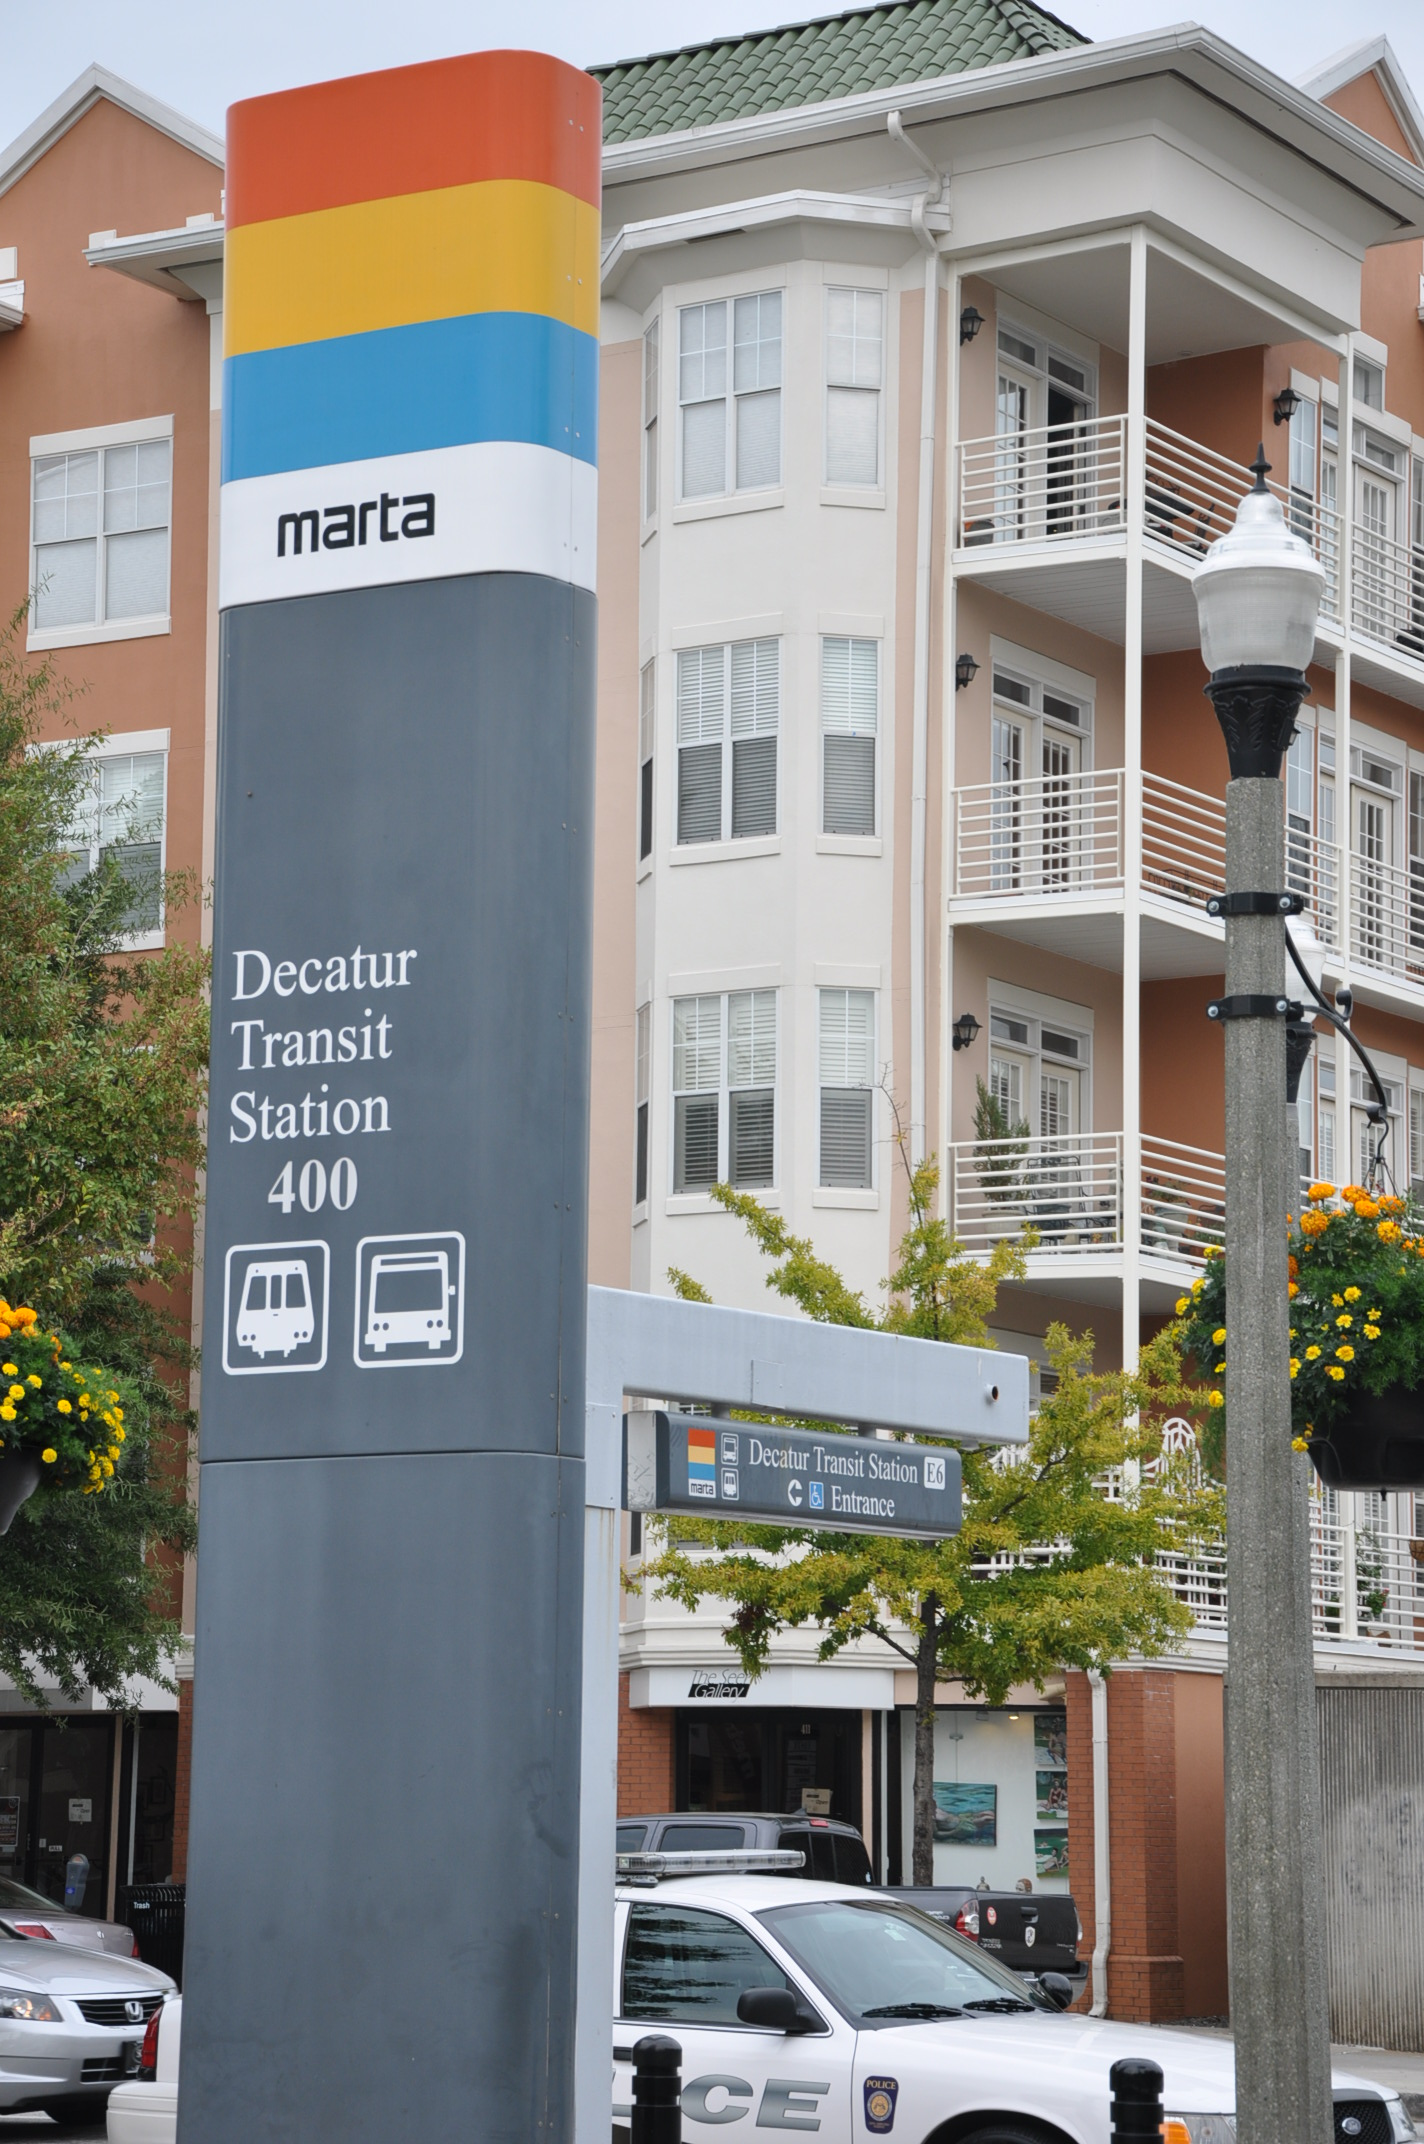 Marta and Decatur